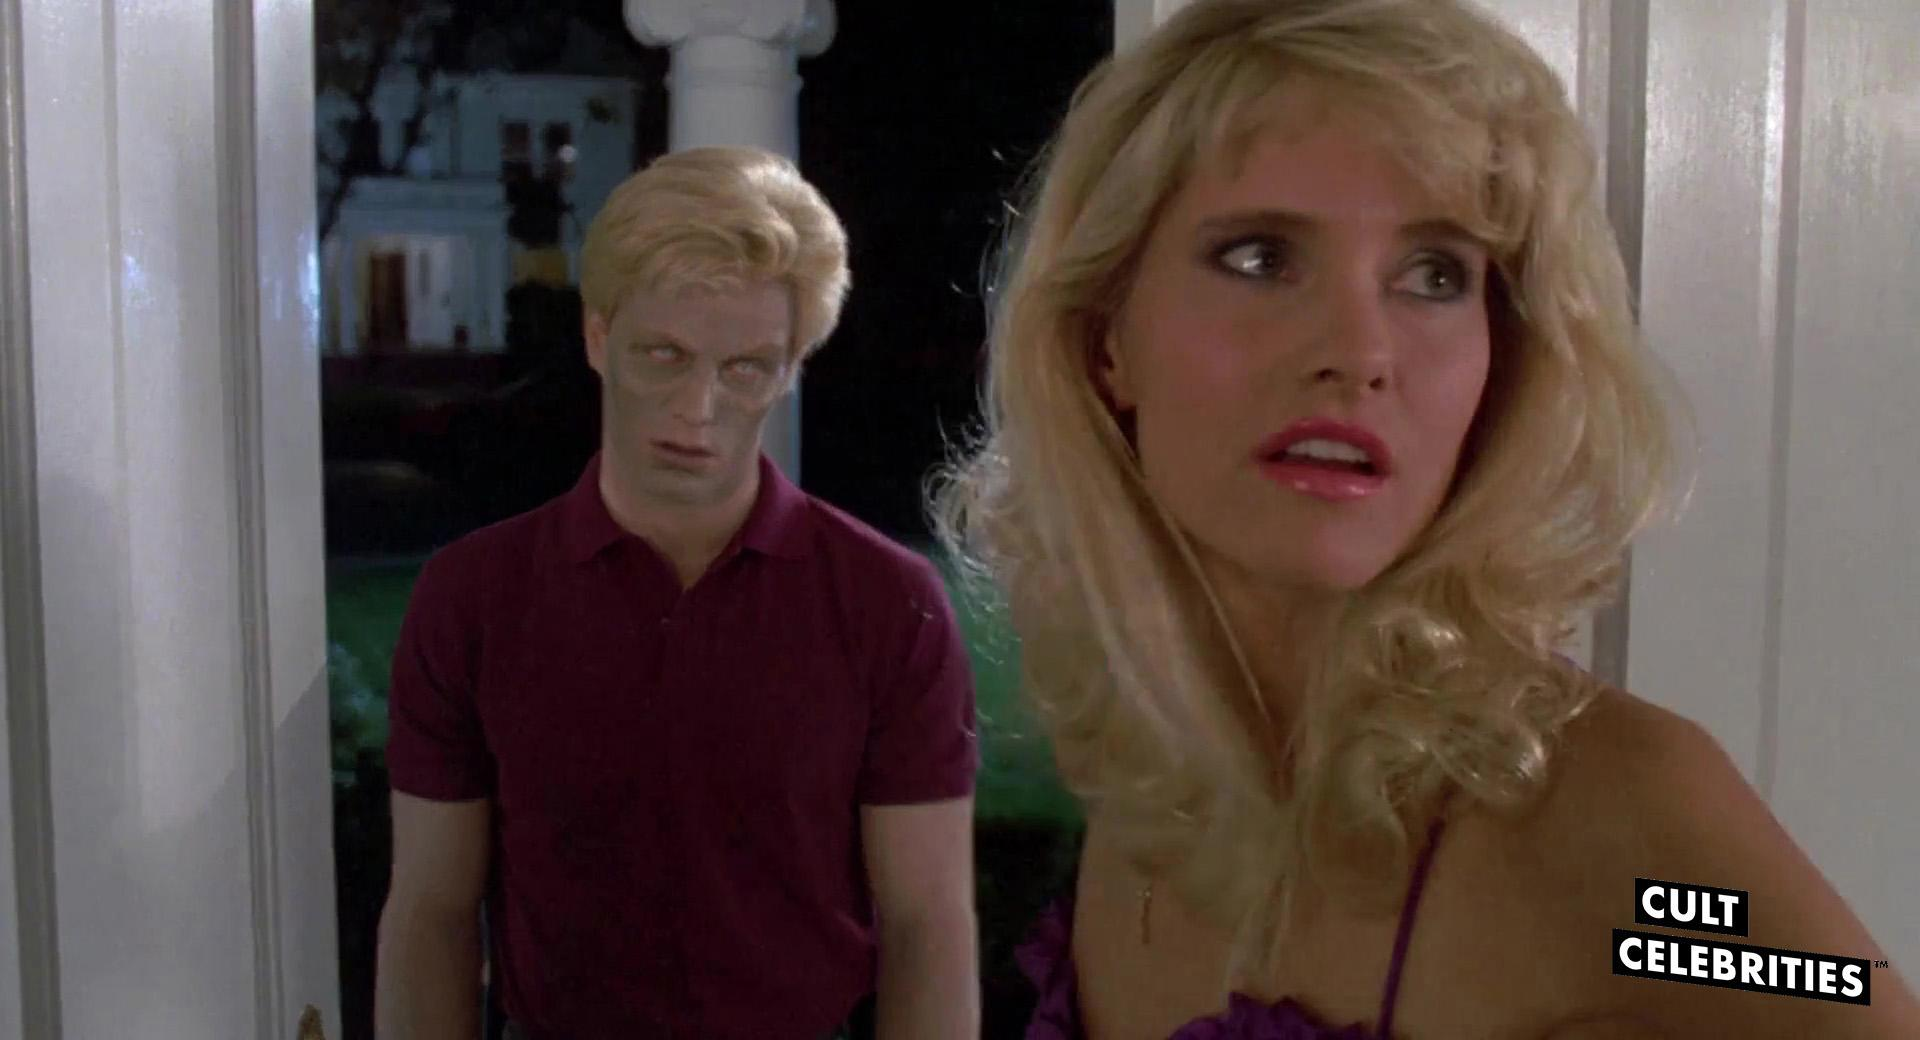 Suzanne Snyder in Night of the Creeps (1986)